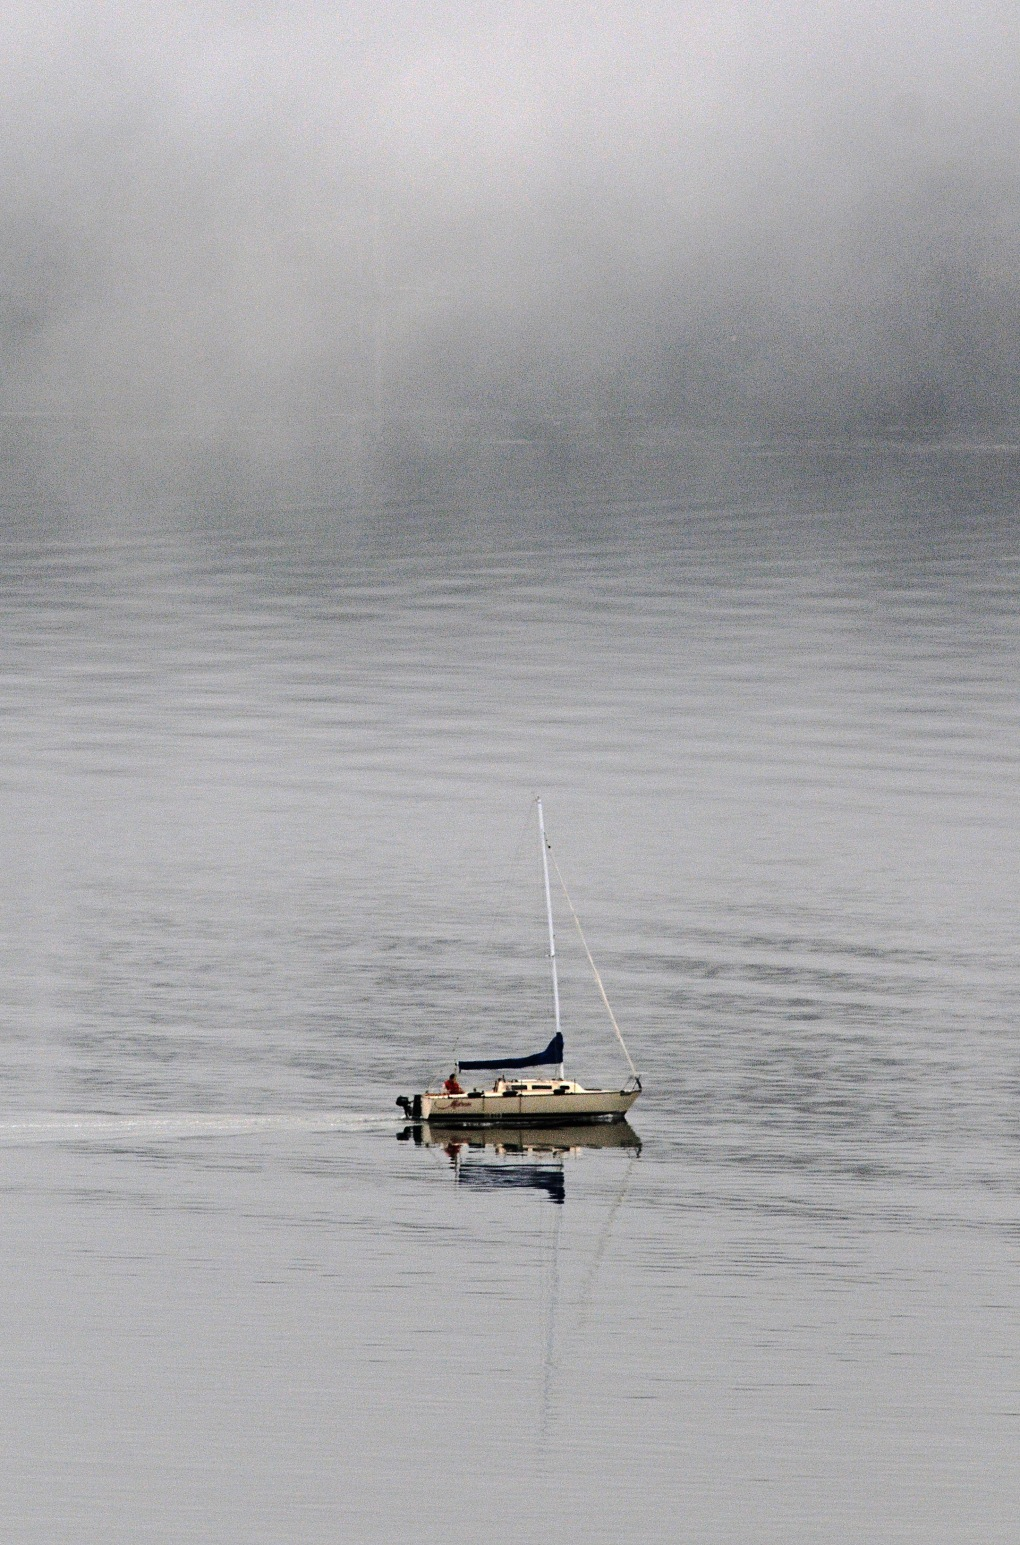 A sailboat powers down Drayton's Passage in the fog early Saturday morning.